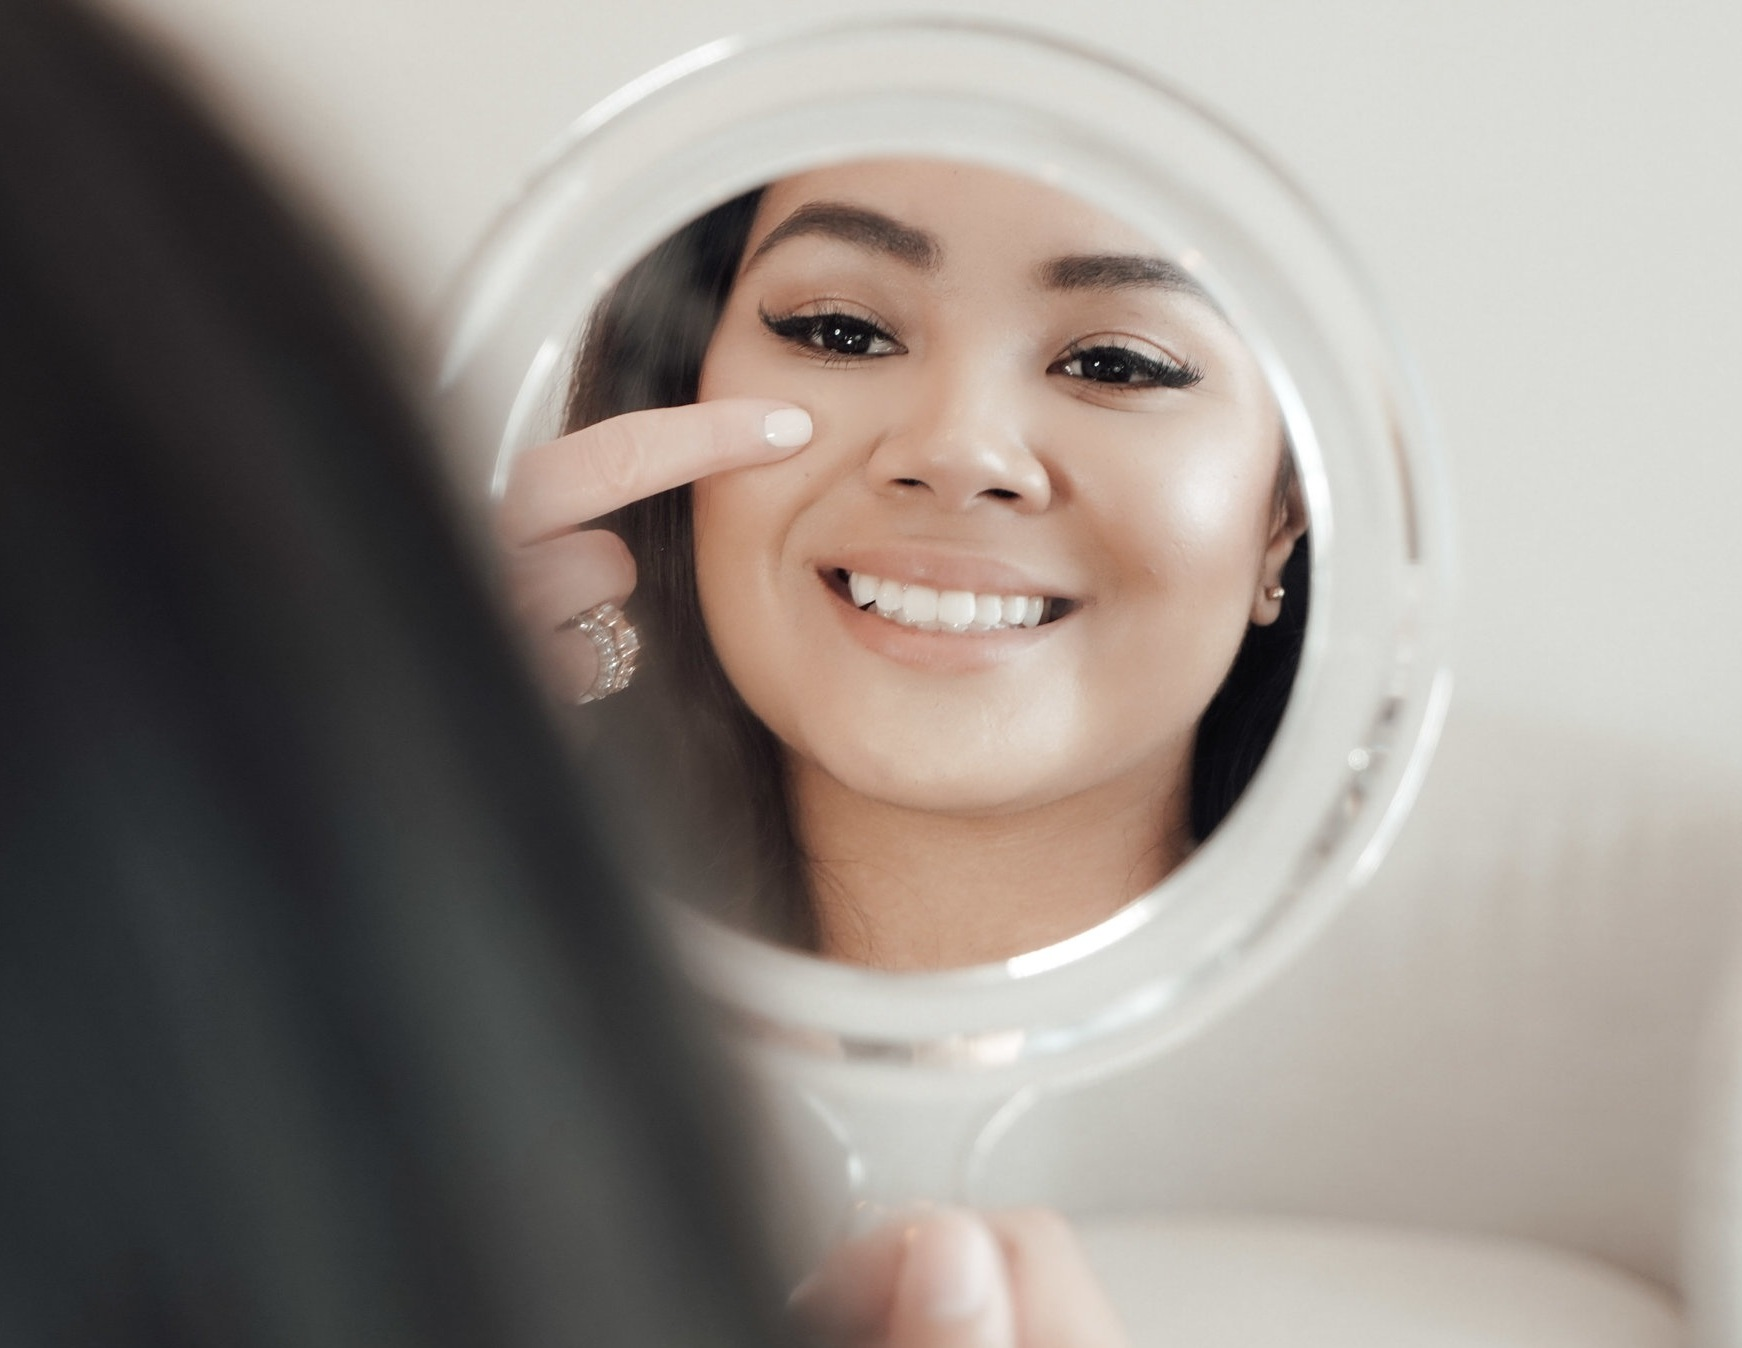 - We believe everyone is happier and more confident when they can look and feel their very best. By customizing treatments based on your beauty goals and the advanced technology and aesthetic medicine we offer, we can give you natural results that enhance your overall look.